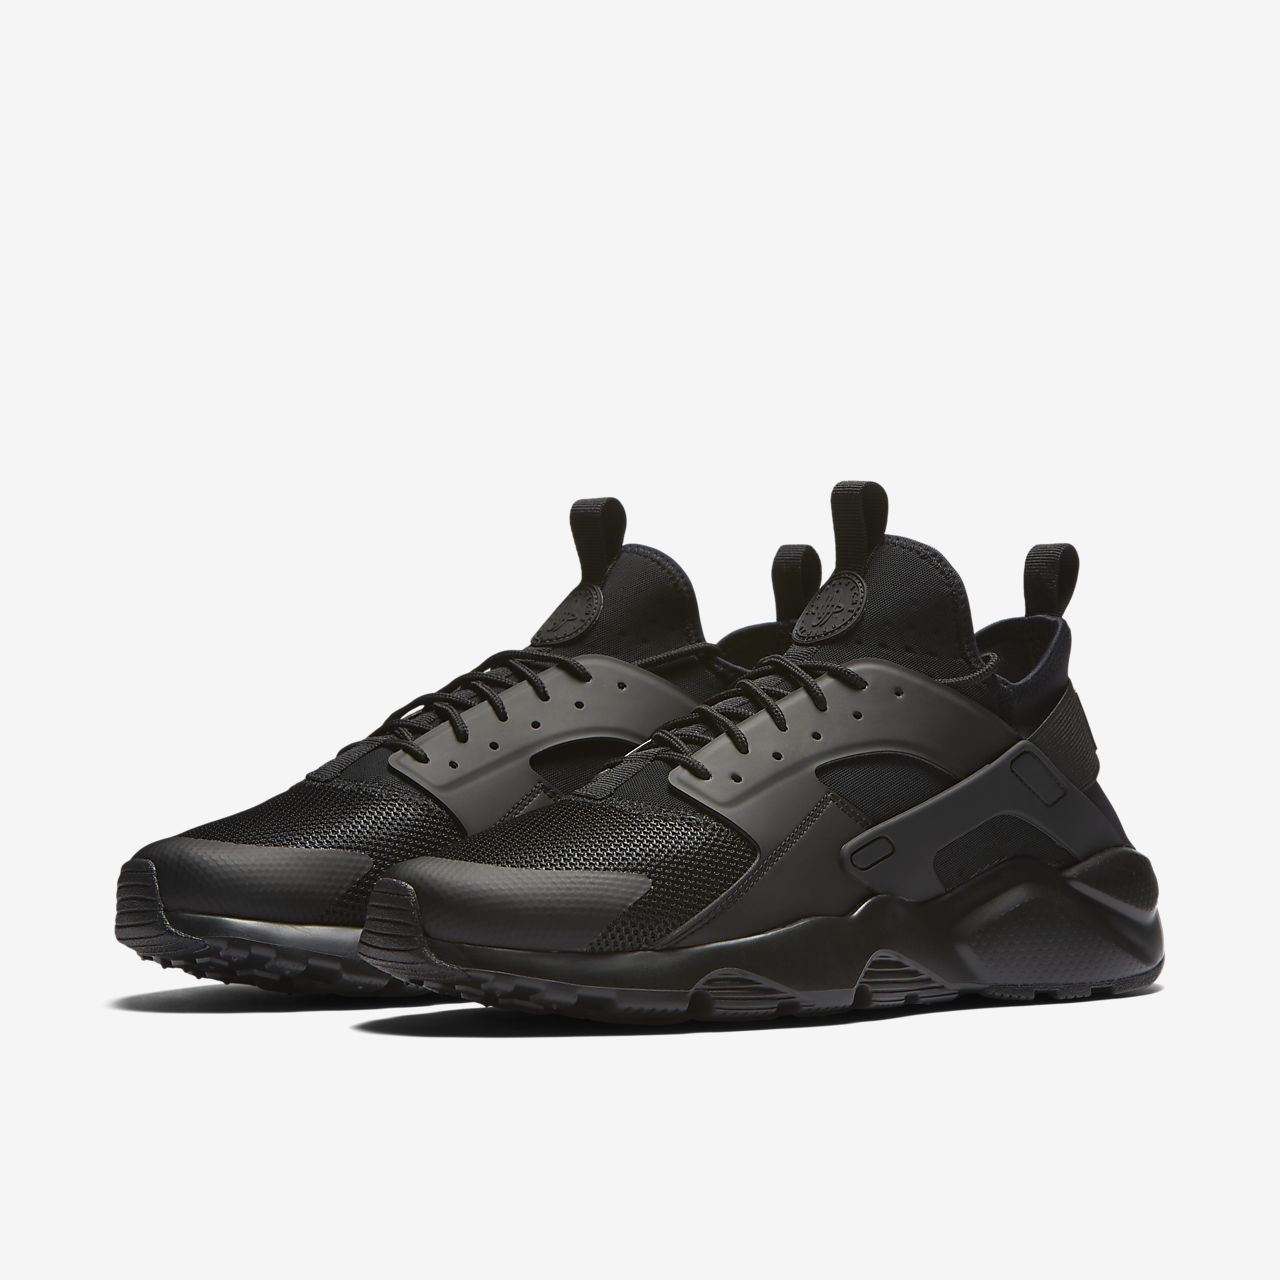 Mens Air Huarache Run Ultra Low-Top Sneakers Nike RWNO6YCBk